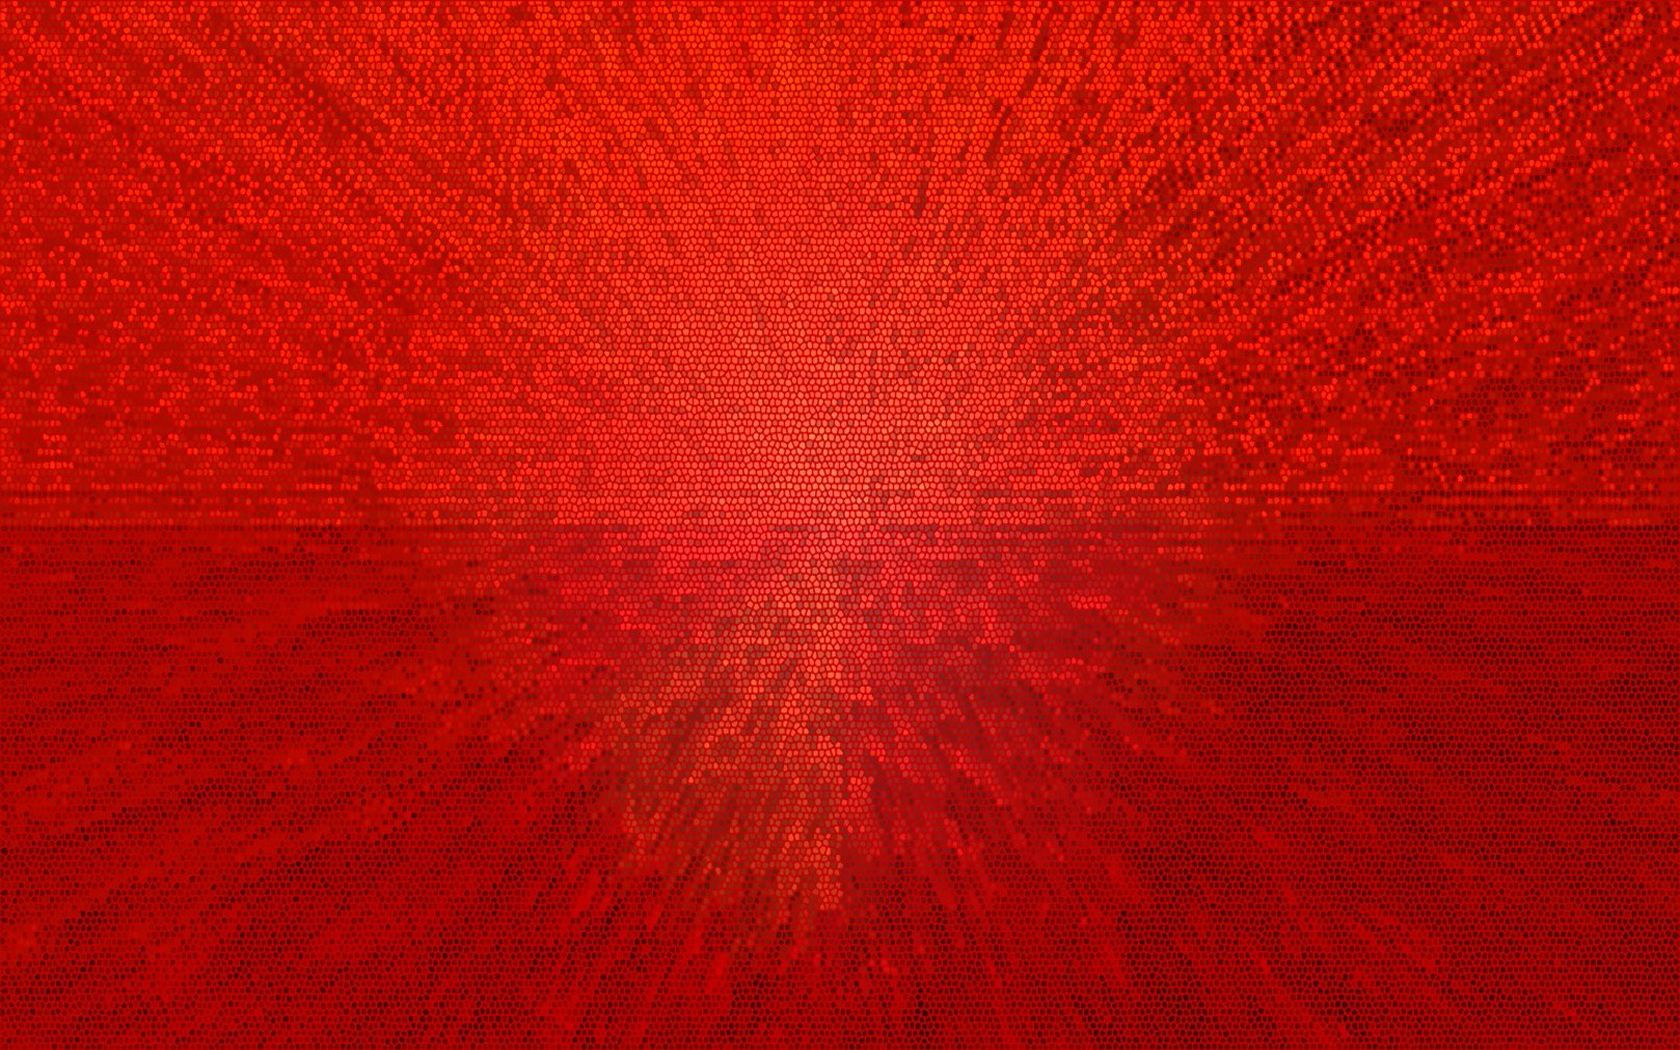 Images Of Rede 1680x1050 Red Energy Desktop Pc And Mac Wallpaper Dark Red Background Red Background Images Red Background